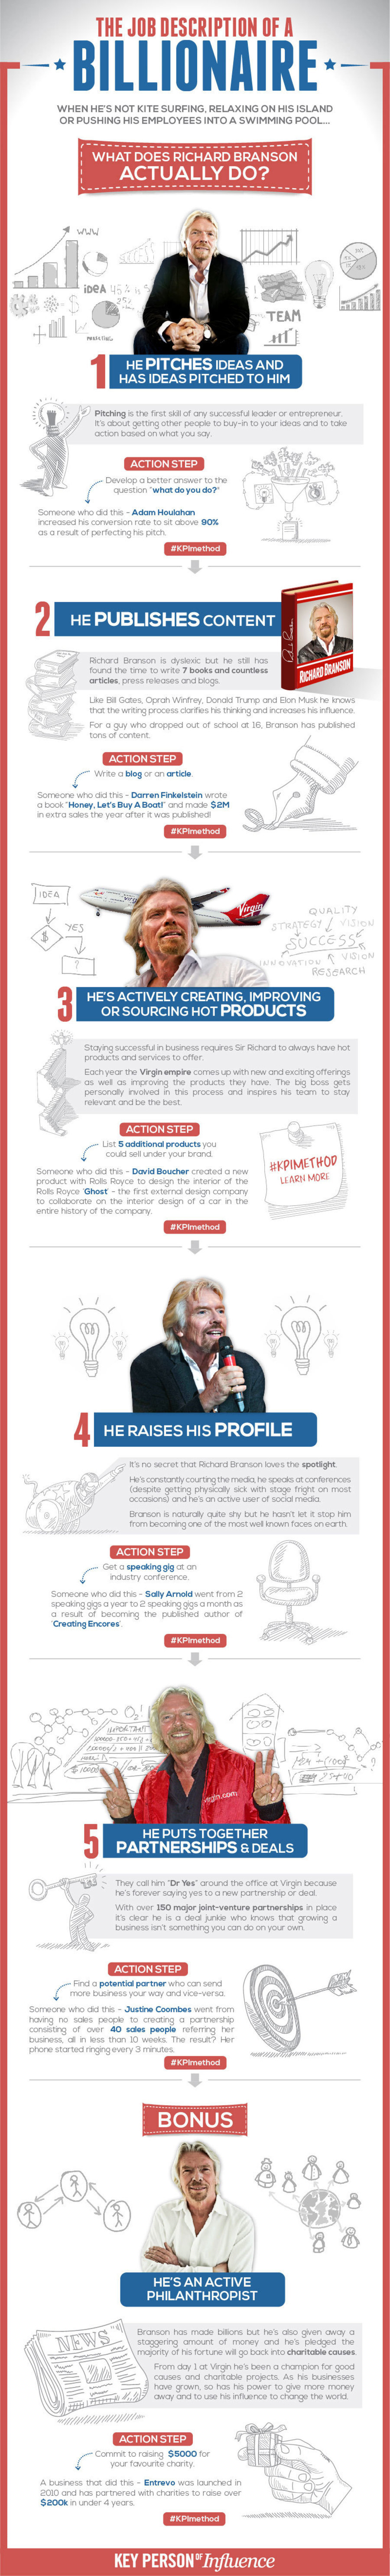 a description of richard branson as an entrepreneur In business stripped bare, sir richard branson shares the inside track on his life in business and reveals the incredible truth about his most risky, brilliant and audacious deals.